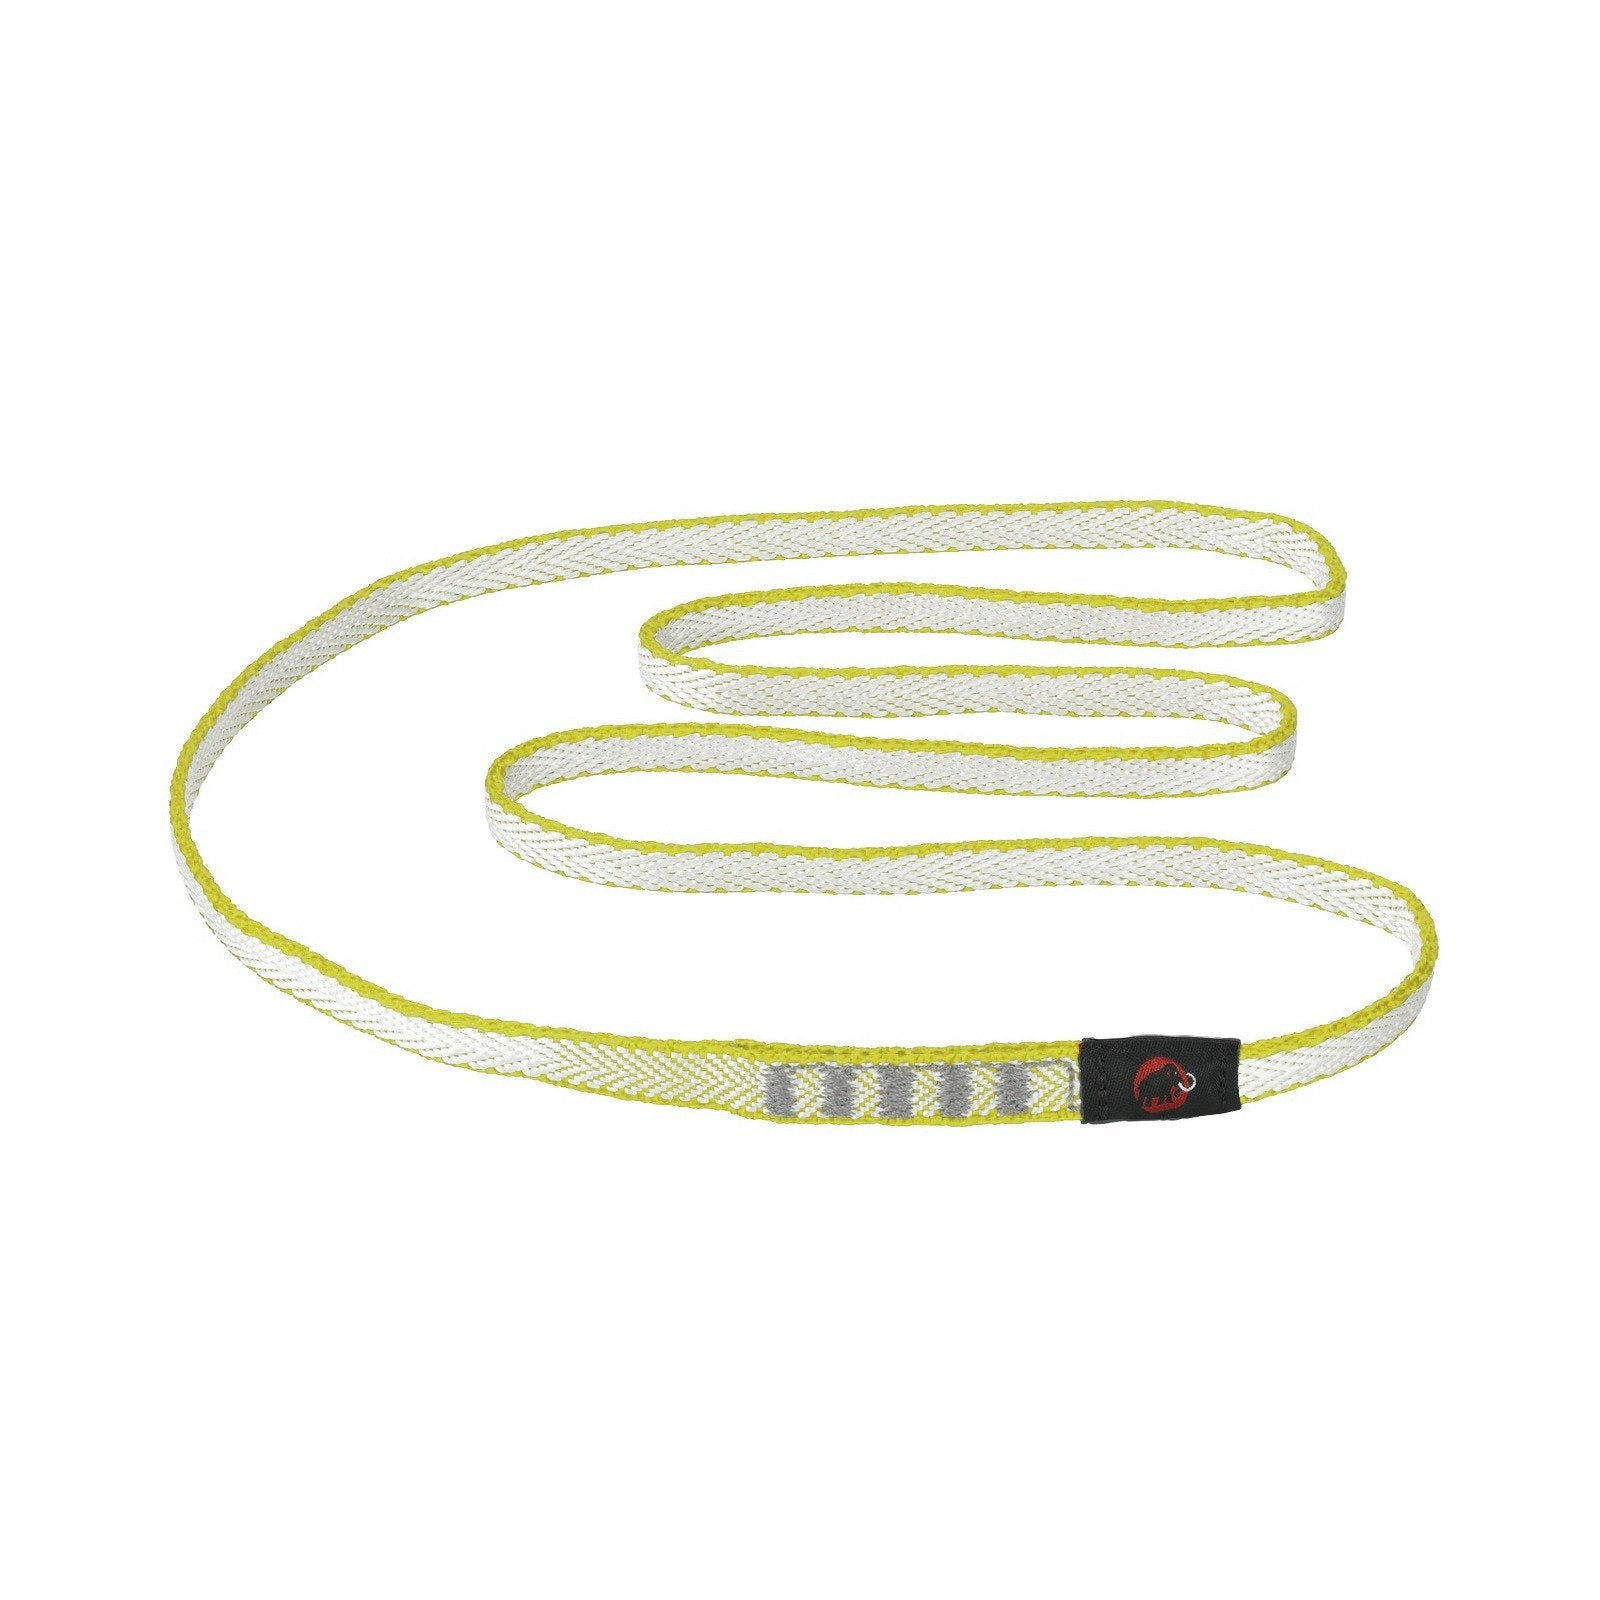 Mammut Contact Dyneema climbing sling 8mm x 180cm, in yellow colour